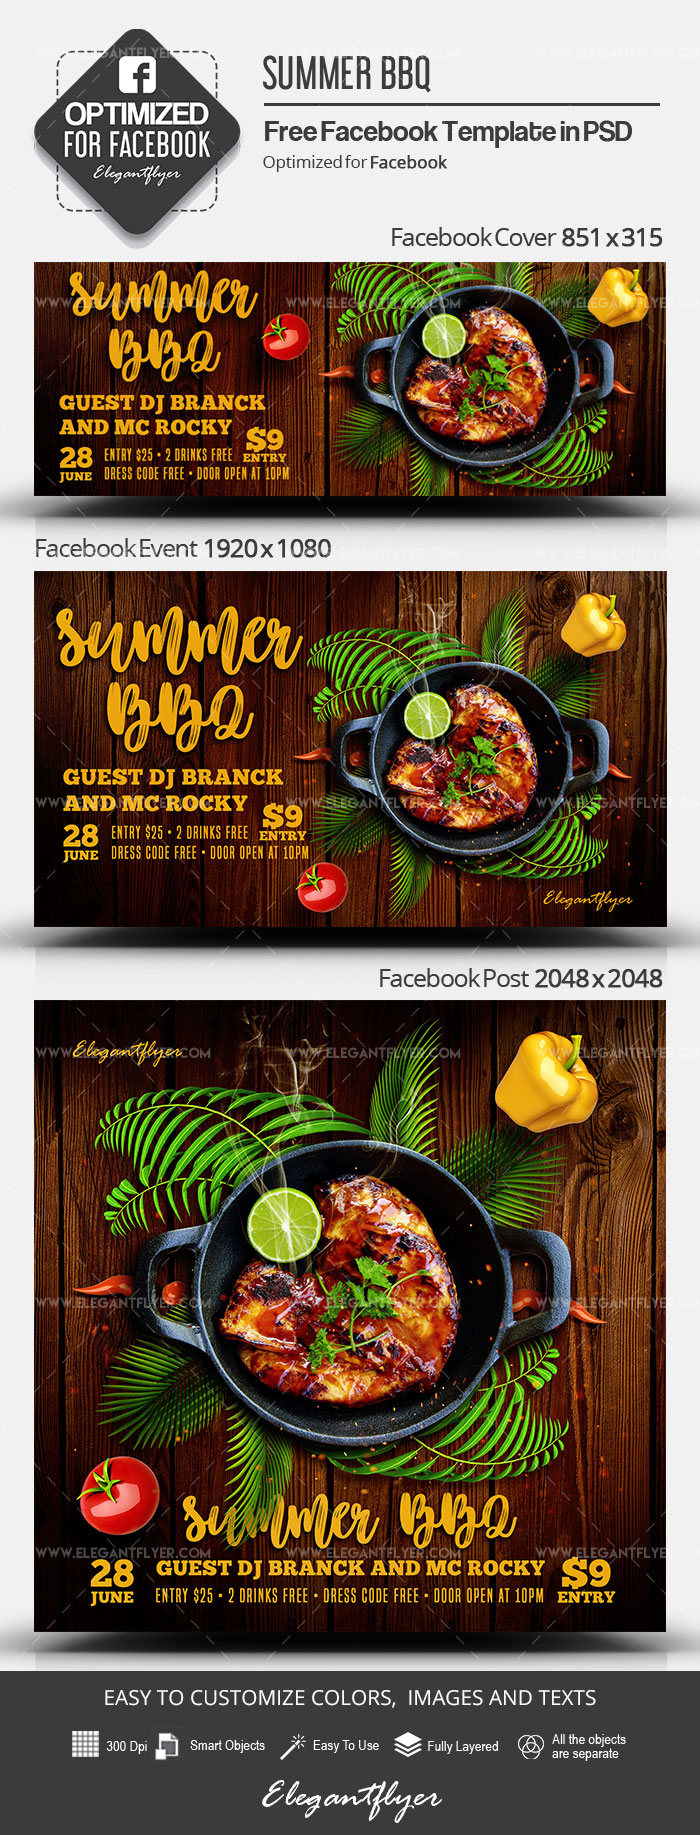 Summer BBQ – Free Facebook Cover Template in PSD + Post + Event cover